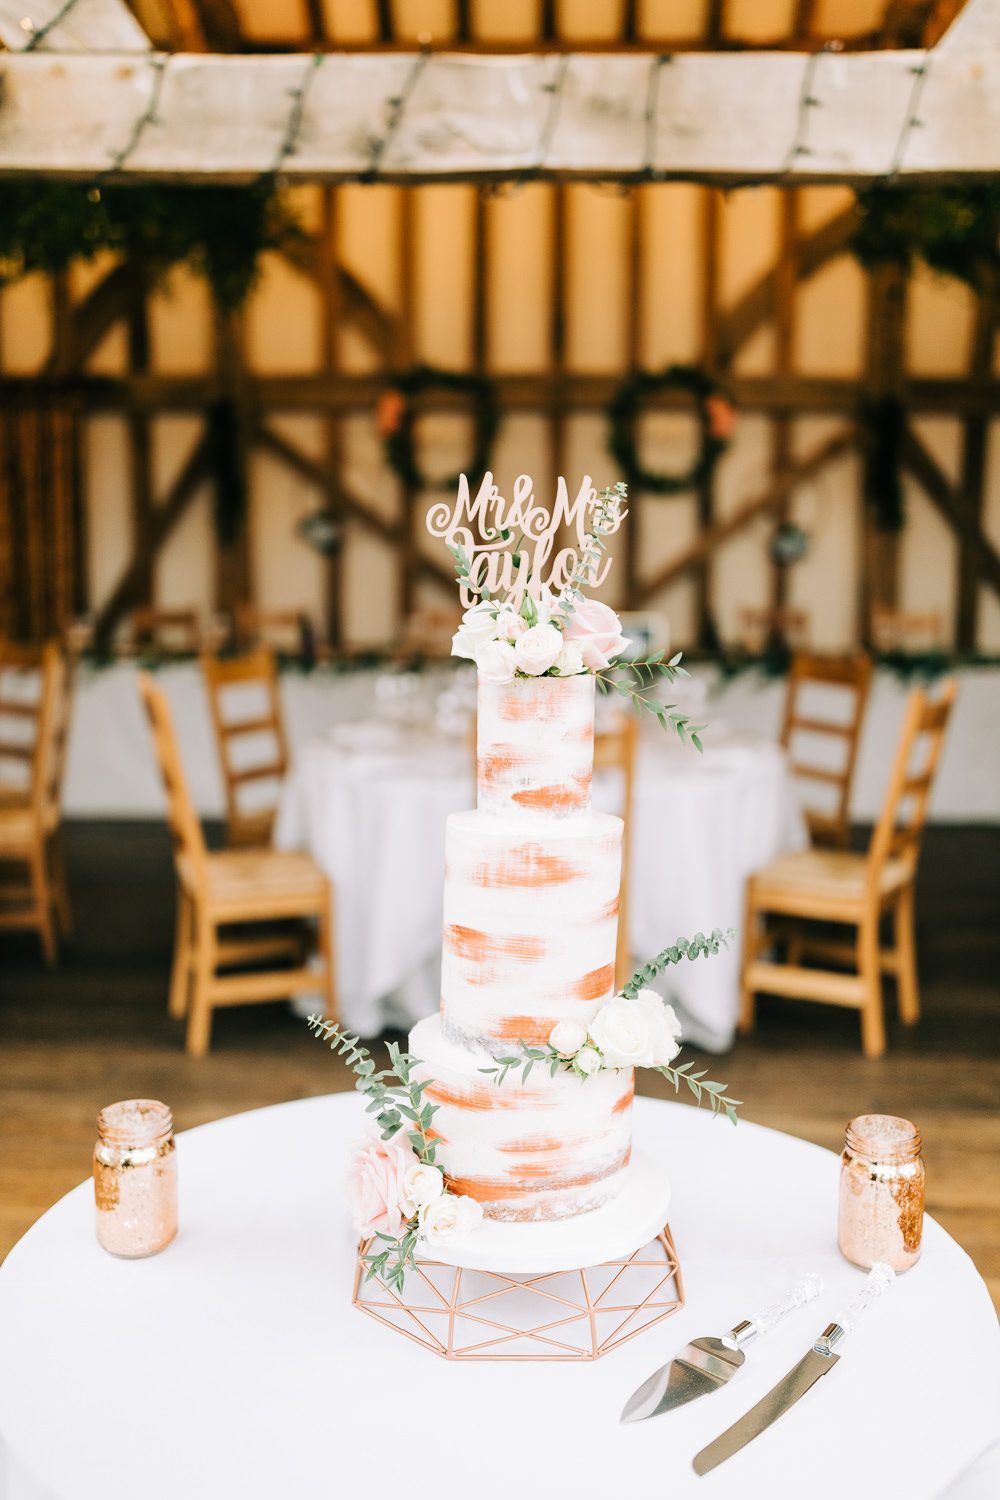 Tall Semi Naked Cake Wooden Laser Cut Topper Sponge Layer Flowers Gate Street Barn Wedding Camilla J Hards